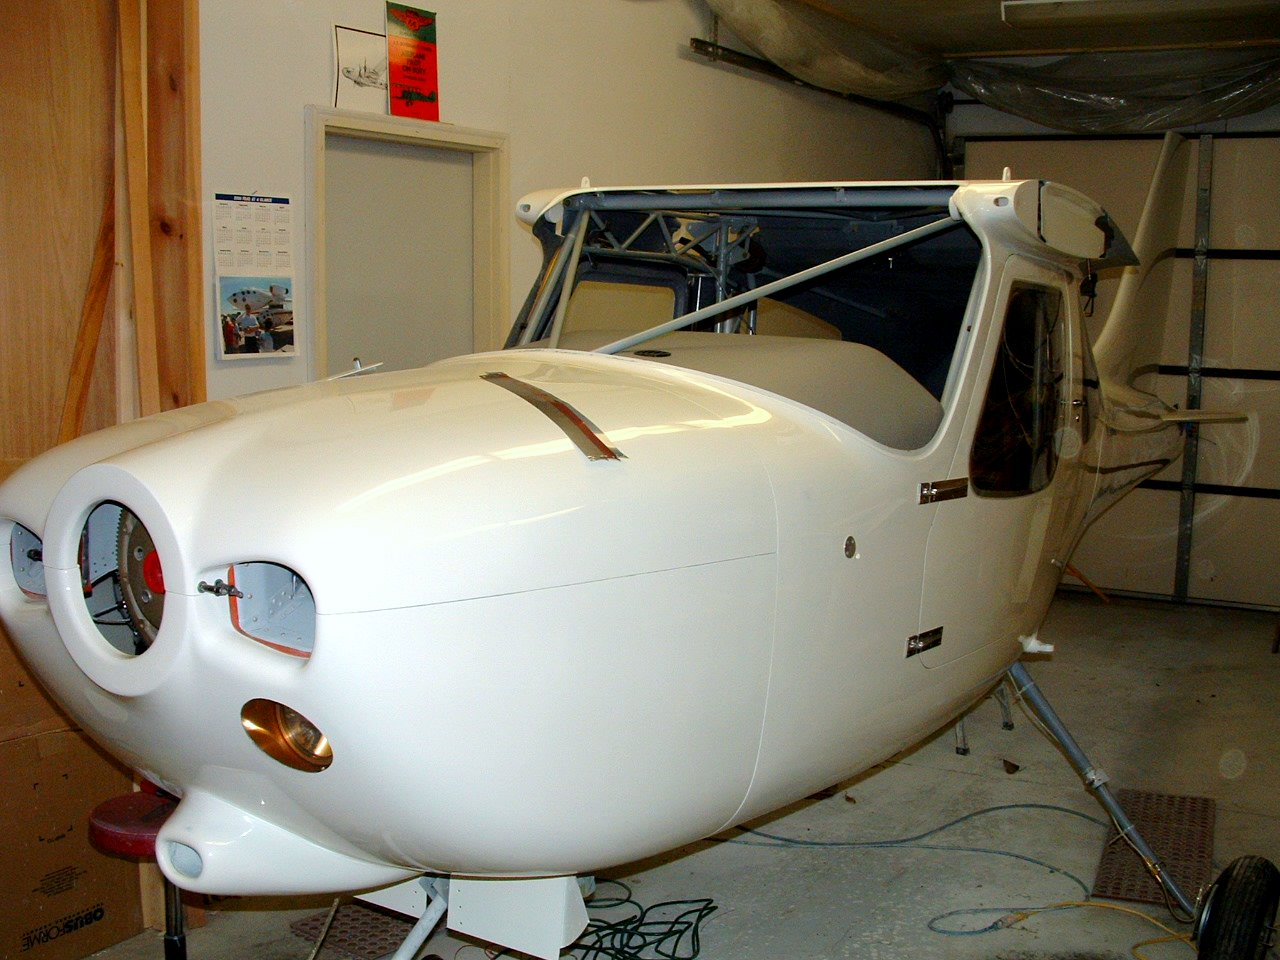 GlaStar Cowling Installation Tips - Glasair Aircraft Owners